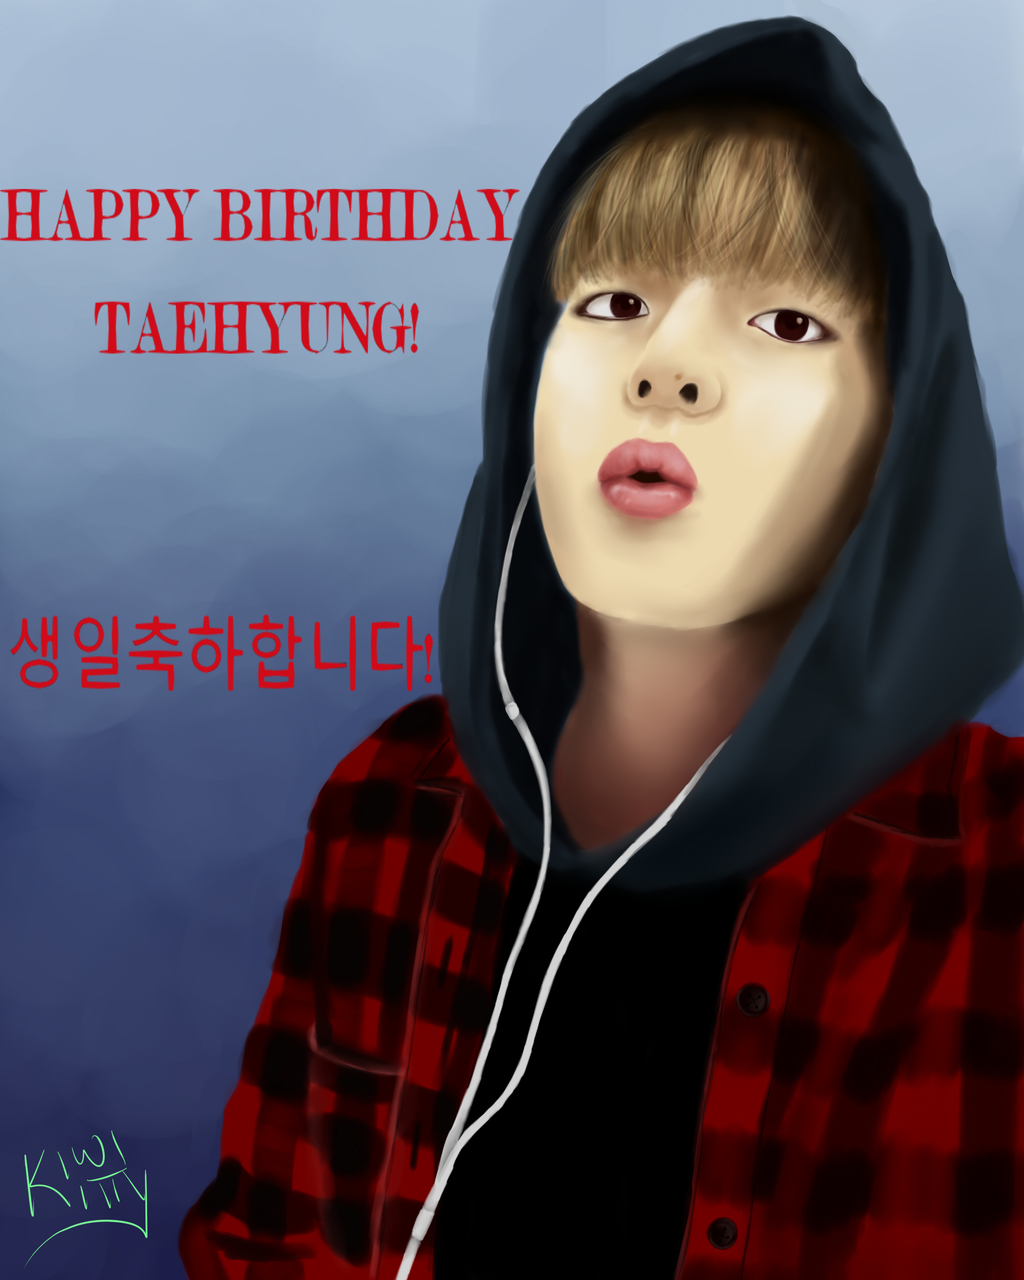 Most recent image: Happy Taehyung Day!!